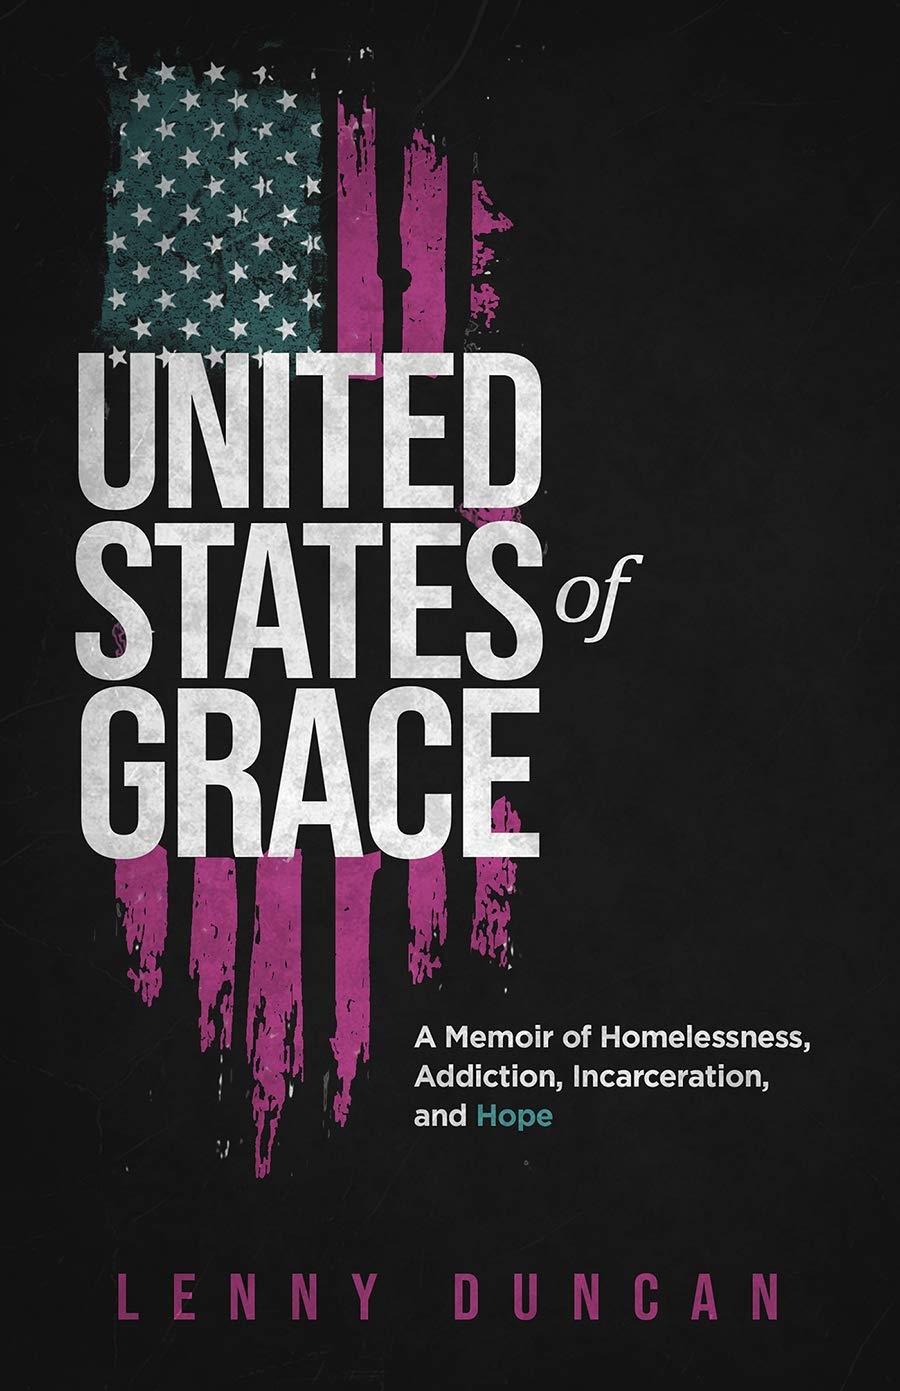 United States of Grace by Lenny Duncan